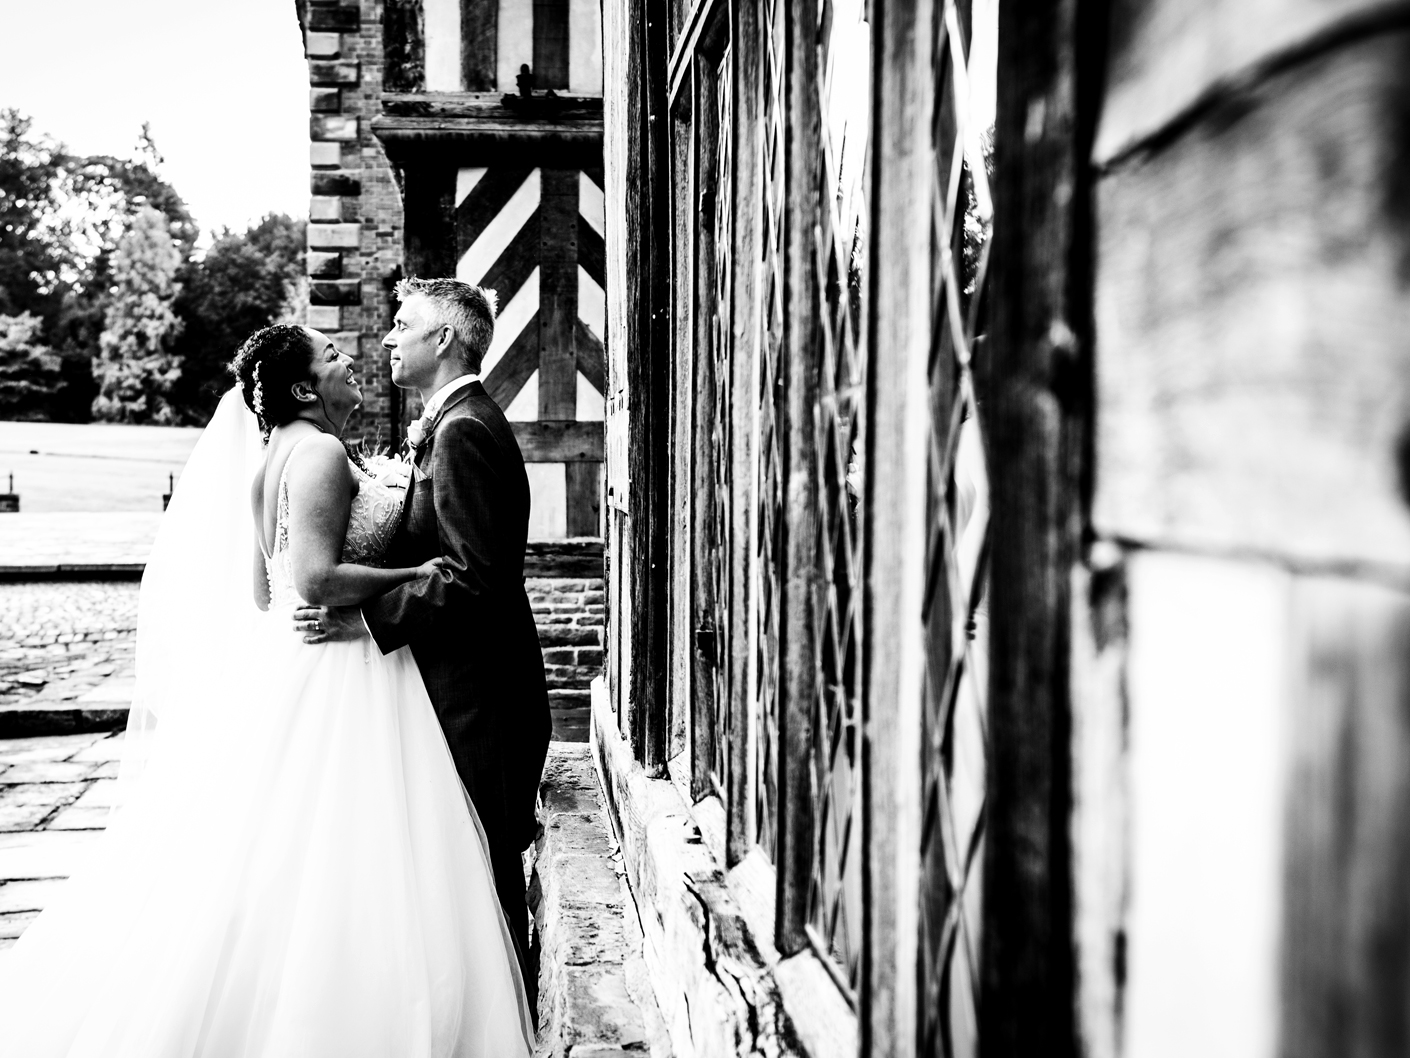 black-and-white-wedding-photography-of-the-bride-and-groom